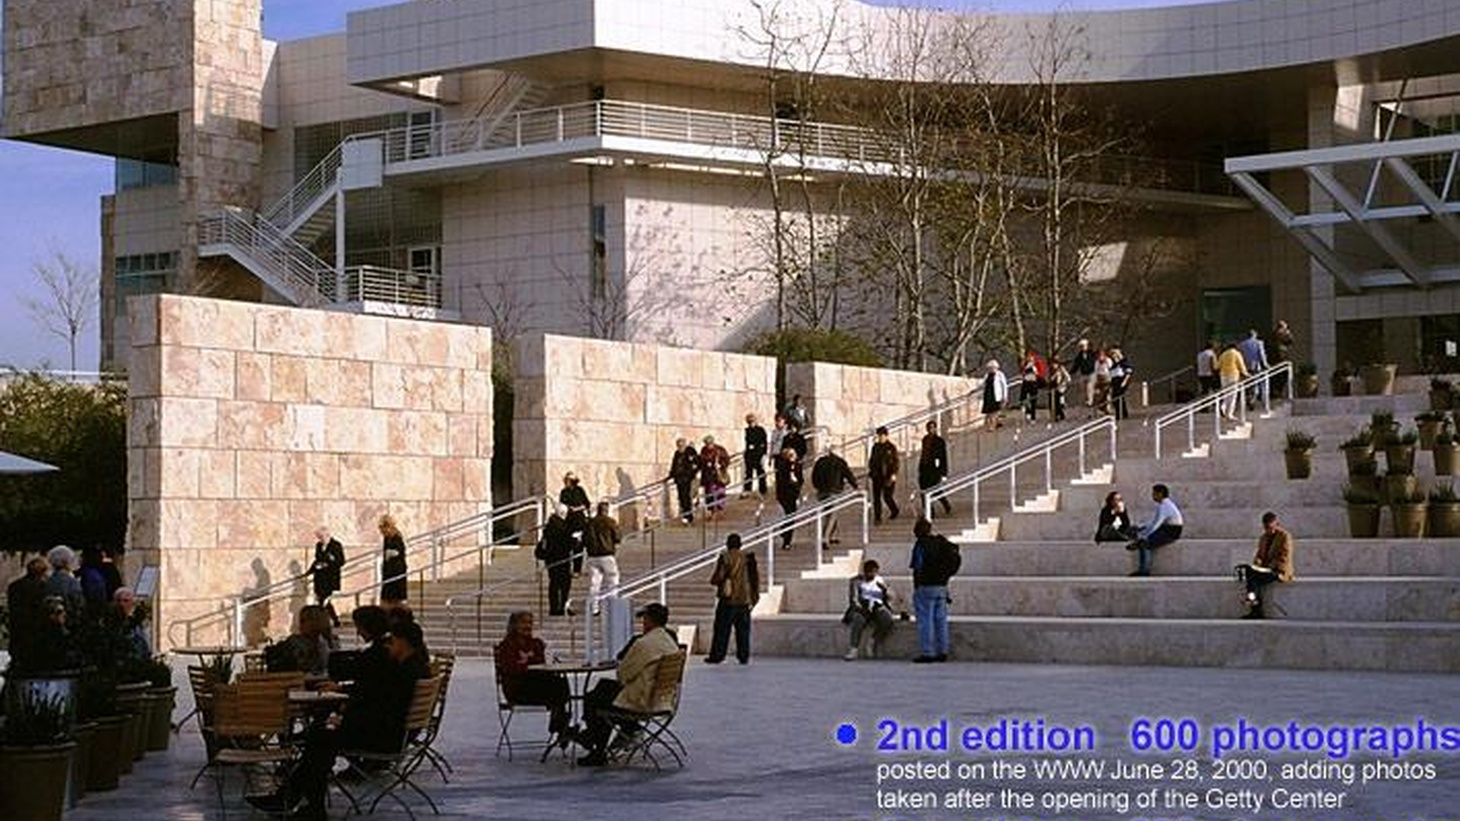 The Getty Museum has become an important visual touchstone of Los Angeles from its perch on a ridgeline of the Santa Monica Mountains, overlooking the Westside where the San Diego Freeway rolls down out of the hills...